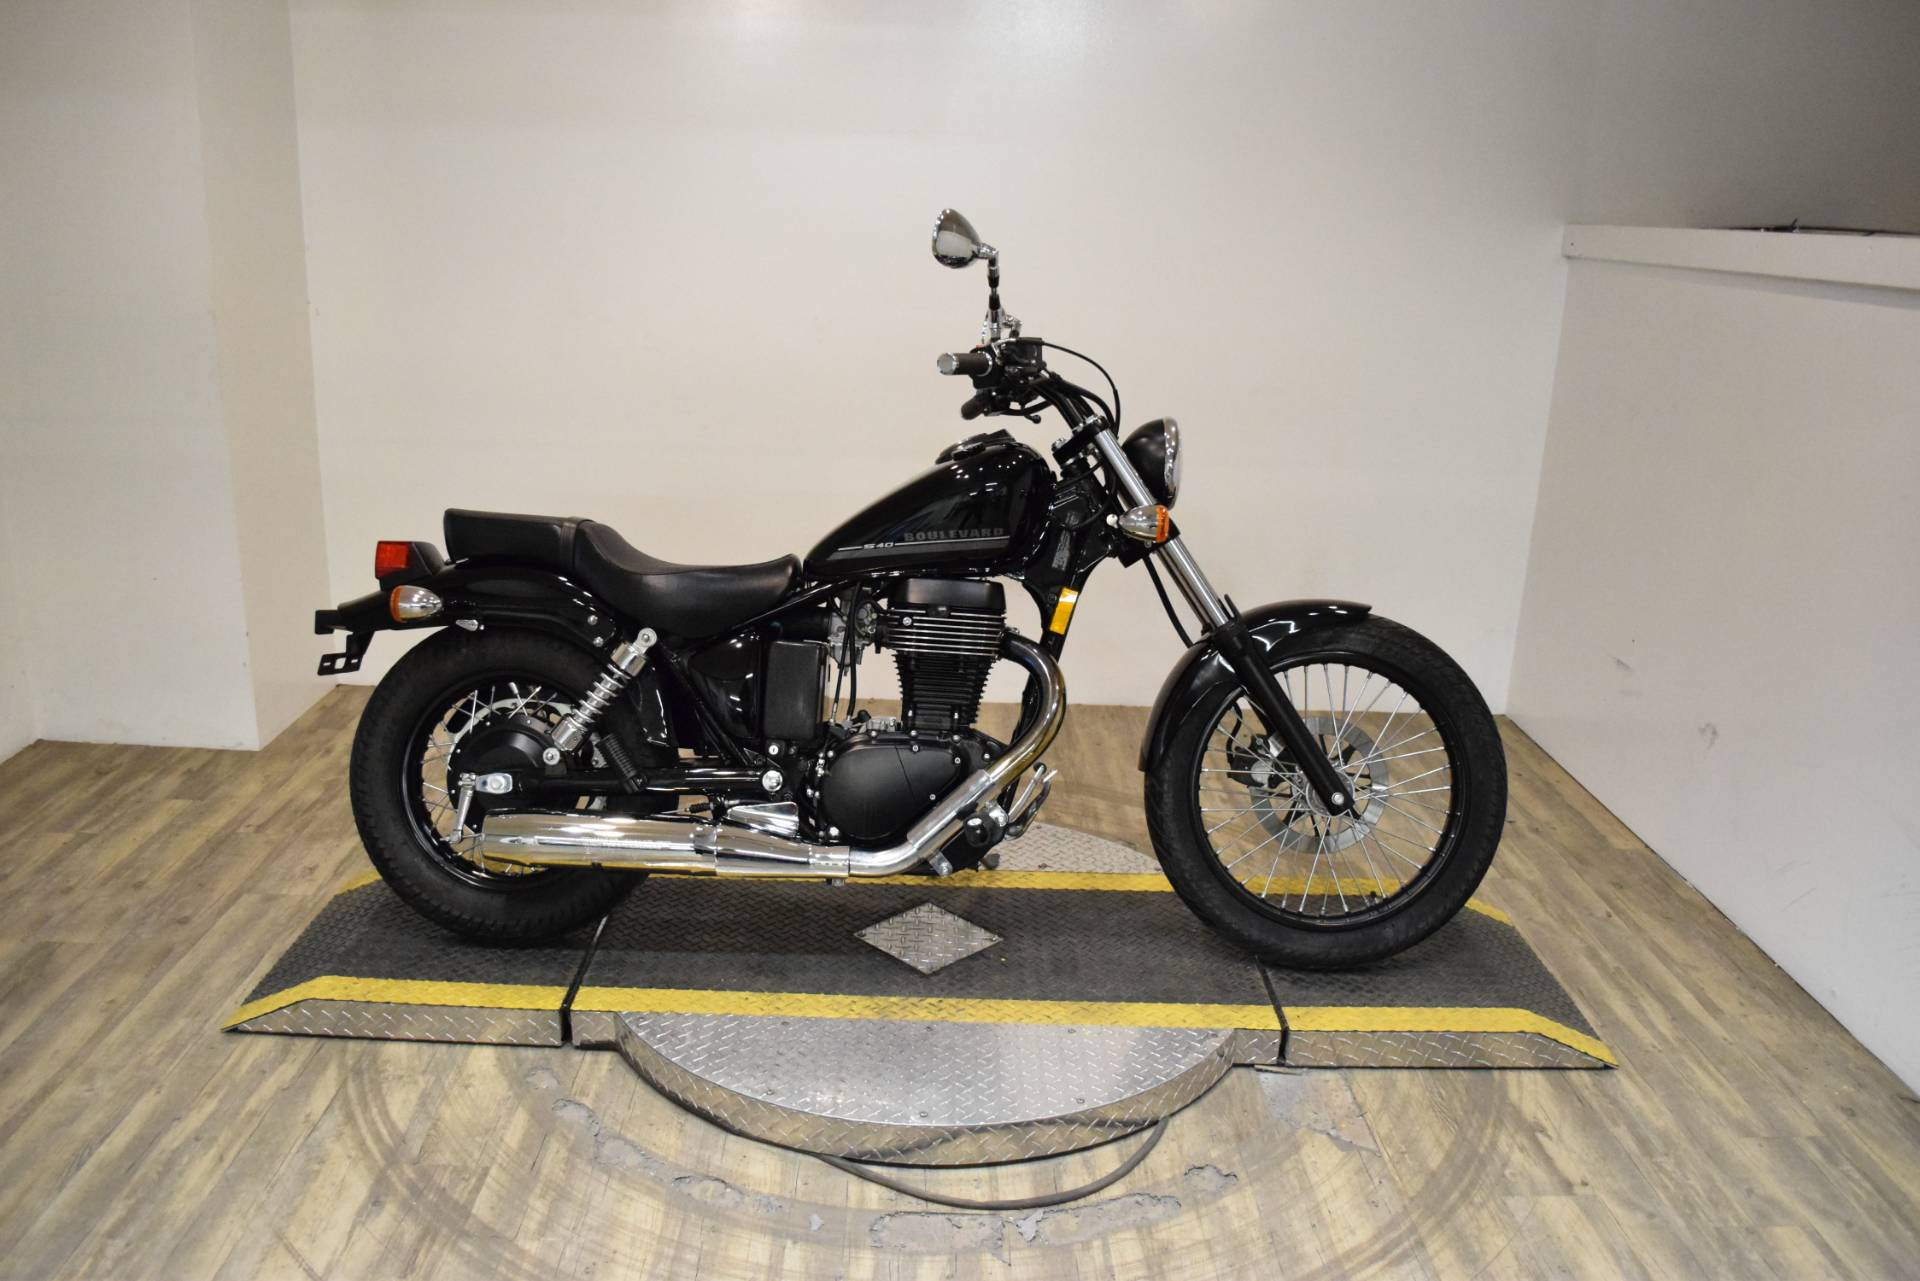 2017 Suzuki Boulevard S40 in Wauconda, Illinois - Photo 1